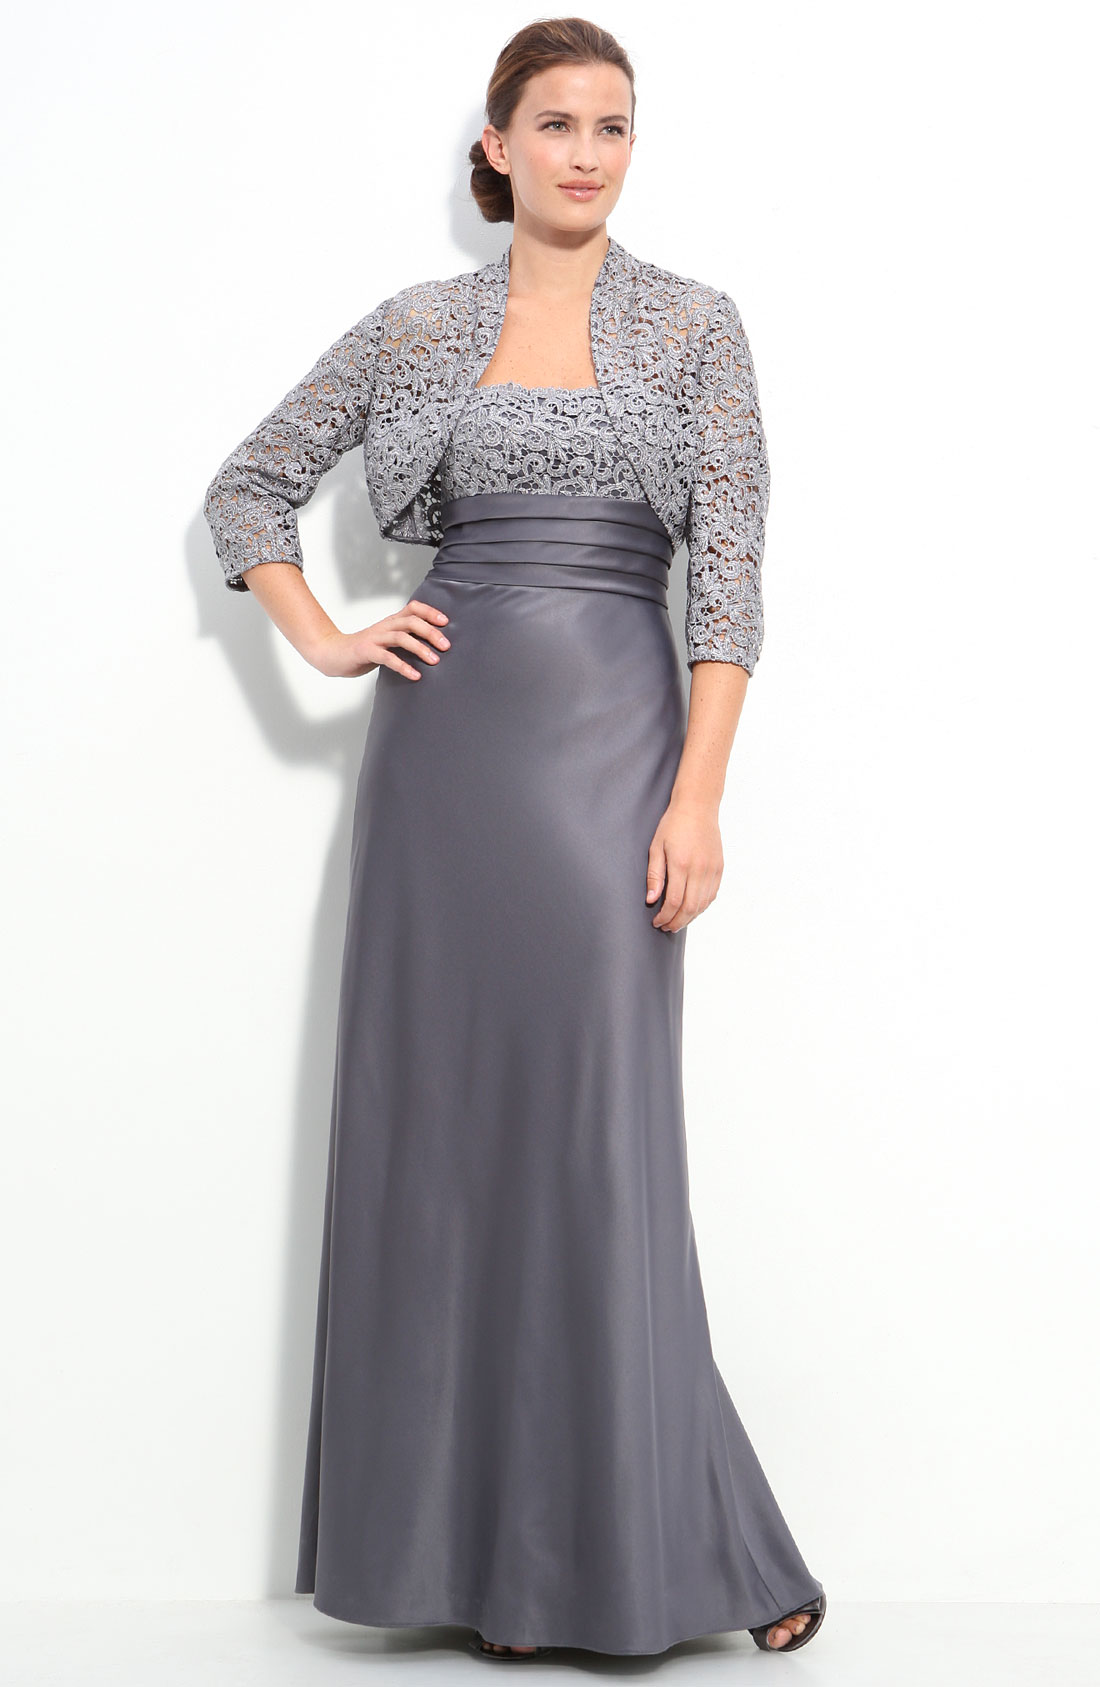 Adrianna Papell Lace Trim Satin Gown with Bolero in Gray